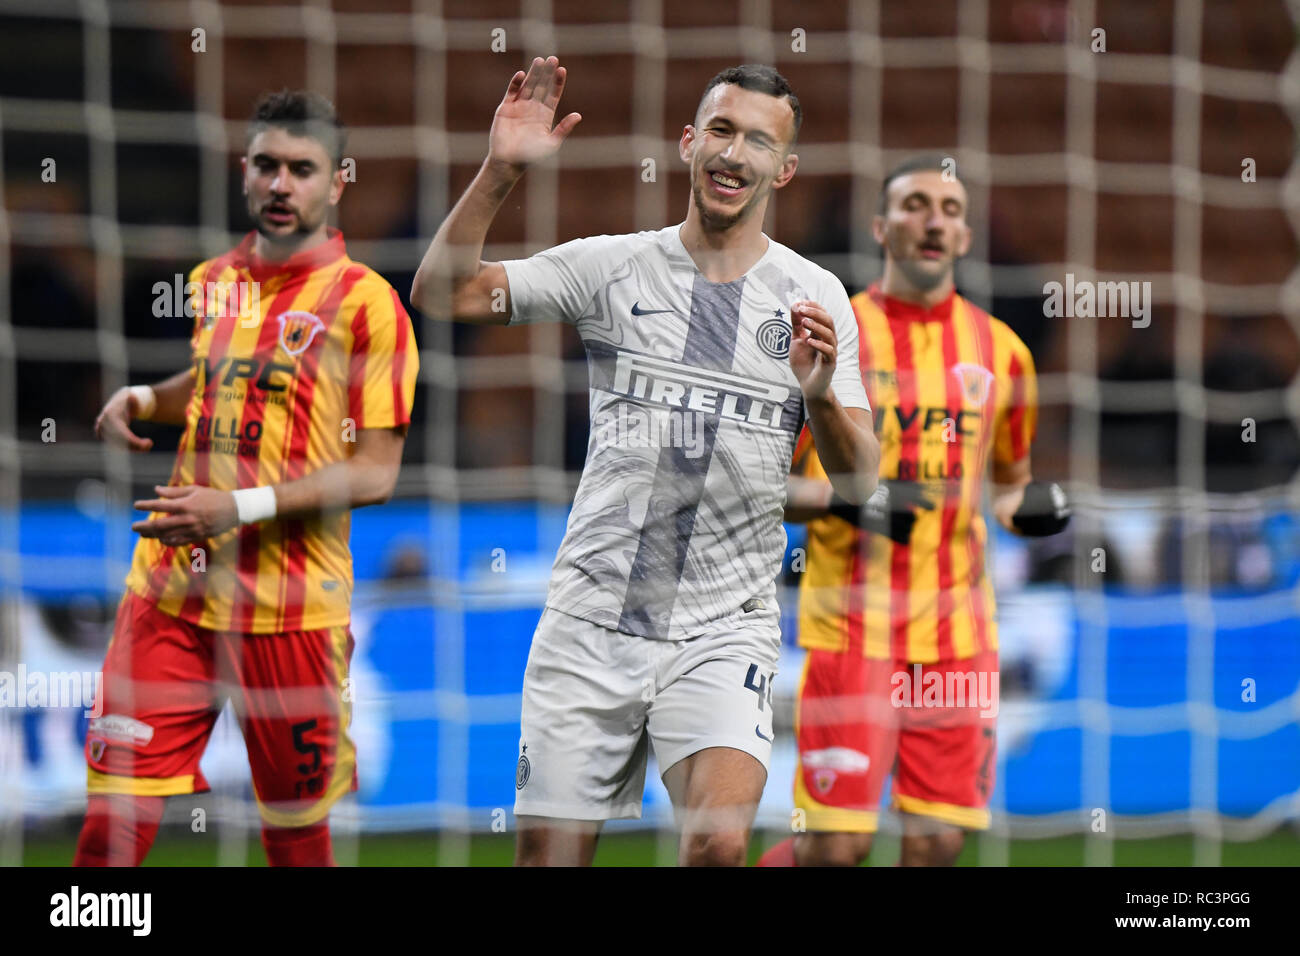 Milan, Italy. 13th Jan 2019. Midfielder Ivan Perisic (Inter) gestures after failing to score during the Italian Cup 'Coppa Italia' football match, Inter Milan vs Benevento Calcio at San Siro Meazza Stadium in Milan, Italy on 13 January 2019. The football match is played behind closed doors after Napoli's Senegalese player Kalidou Koulibaly was subject to racist chants by FC Internazionale's 'ultra' fans during the Boxing Day match. Credit: Piero Cruciatti/Alamy Live News - Stock Image